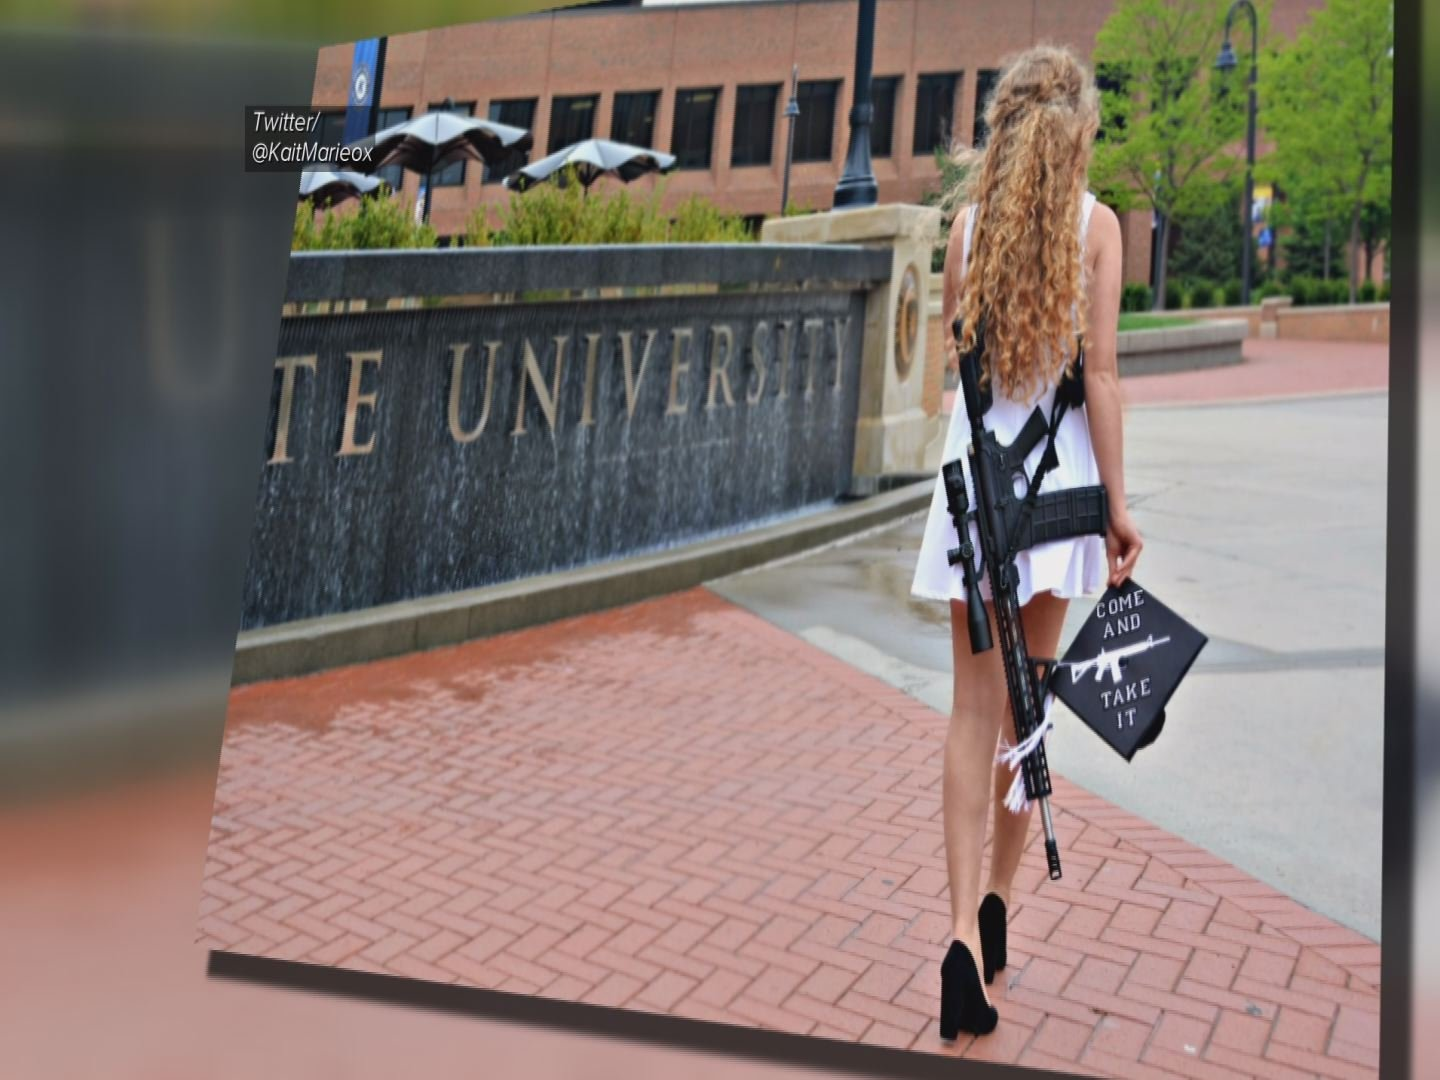 Kent State graduate's gun-toting photo goes viral